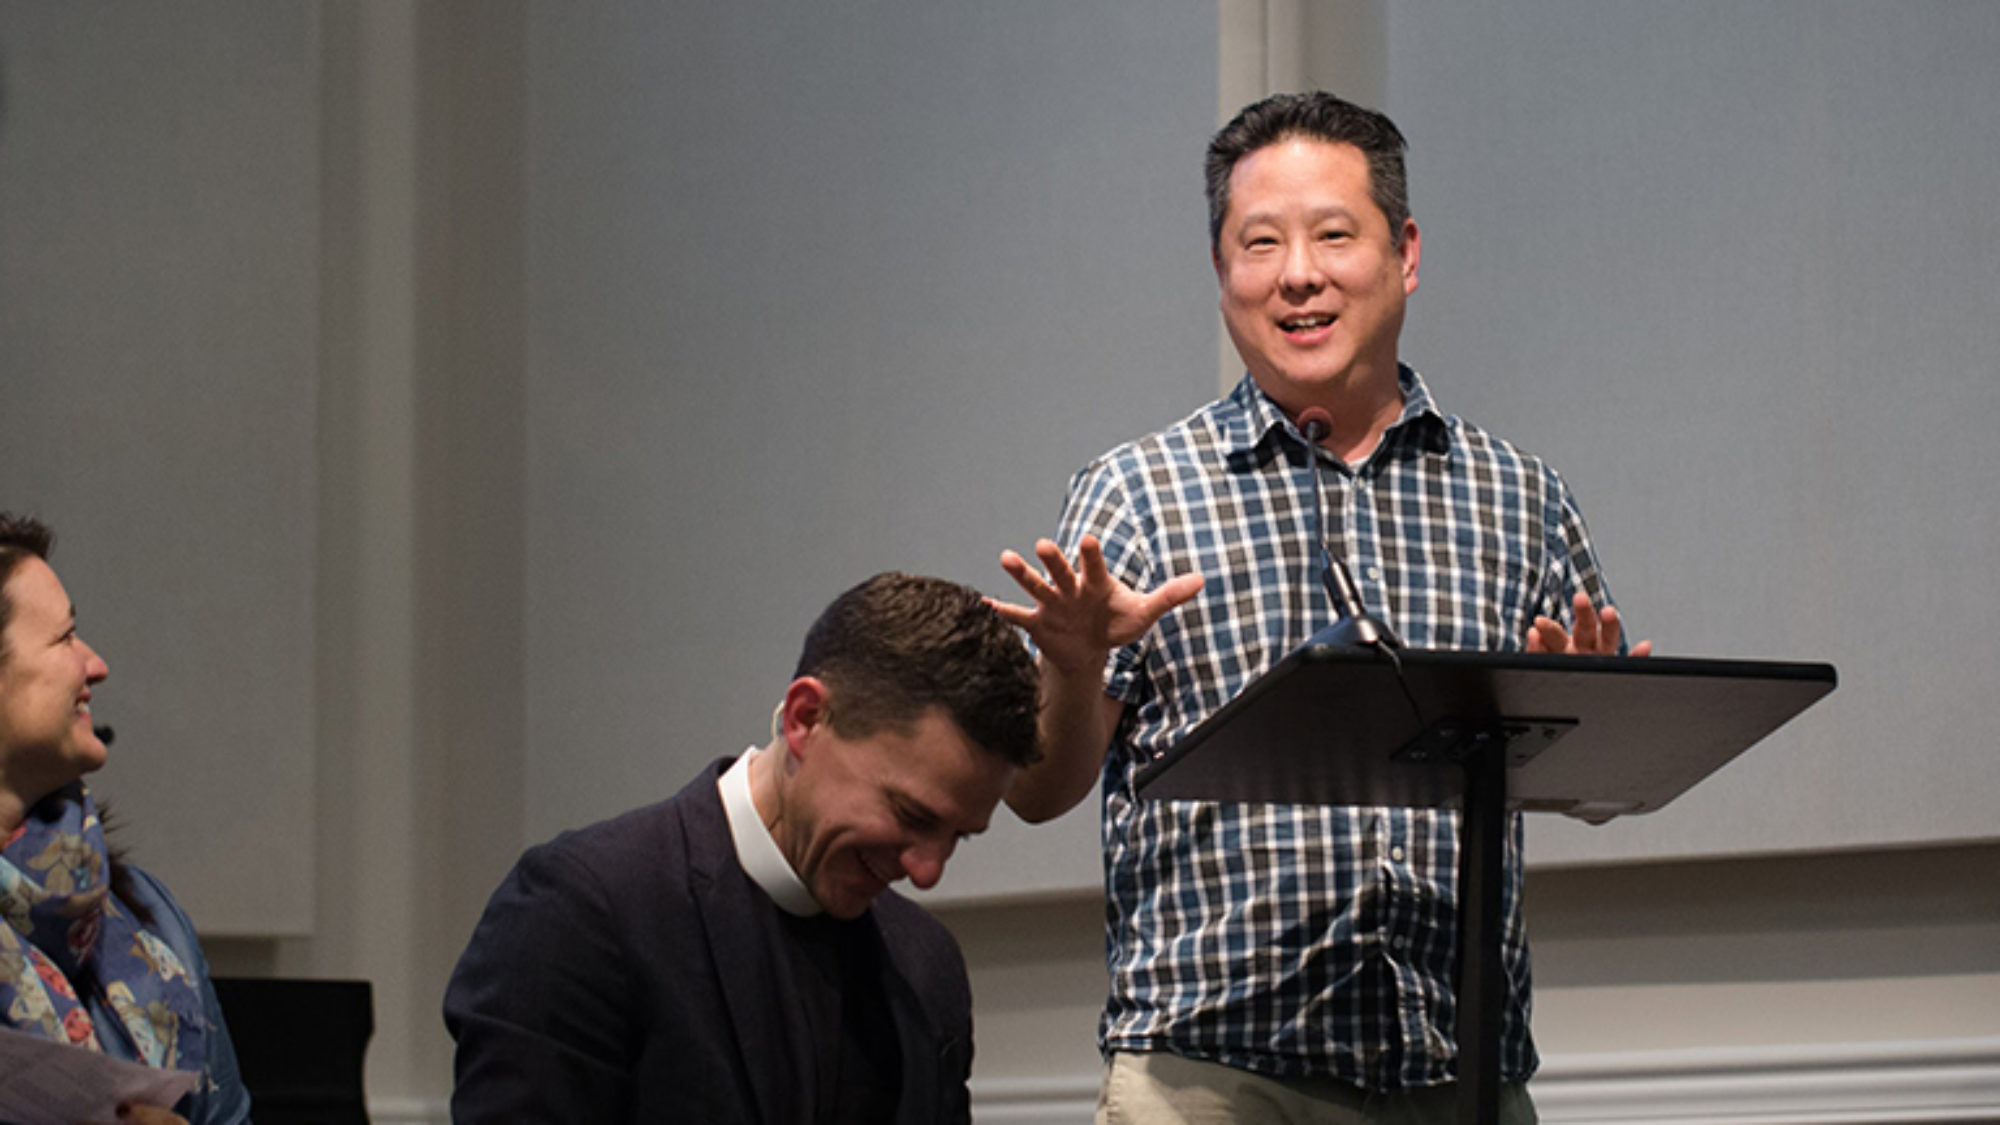 Steve Park at a podium with two people sitting and laughing.